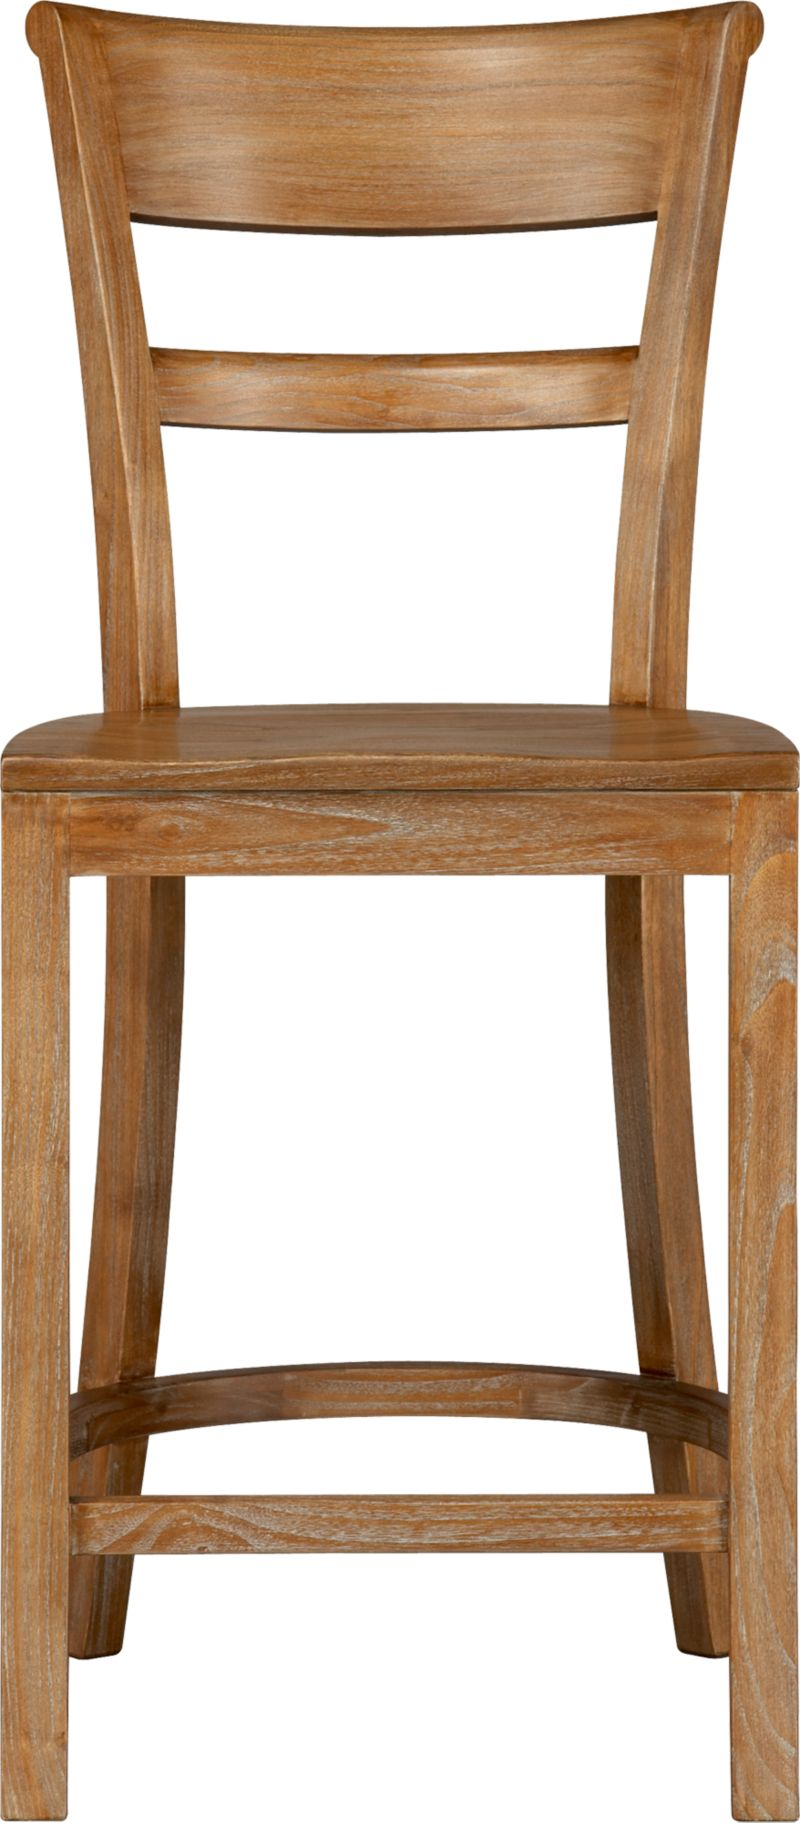 "Solid tropical sungkai wood seating pulls up to counter with ease and elegance. Barstool has graceful rolled back and comfortable contours to the seat. A soft-sheen lacquer adds a finishing detail.<br /><br /><NEWTAG/><ul><li>Solid tropical sungkai wood</li><li>Grey wash, clear protective lacquer finish</li><li>Contoured seat</li><li>24""H seat sized for counters</li><li>Made in Indonesia</li></ul>"